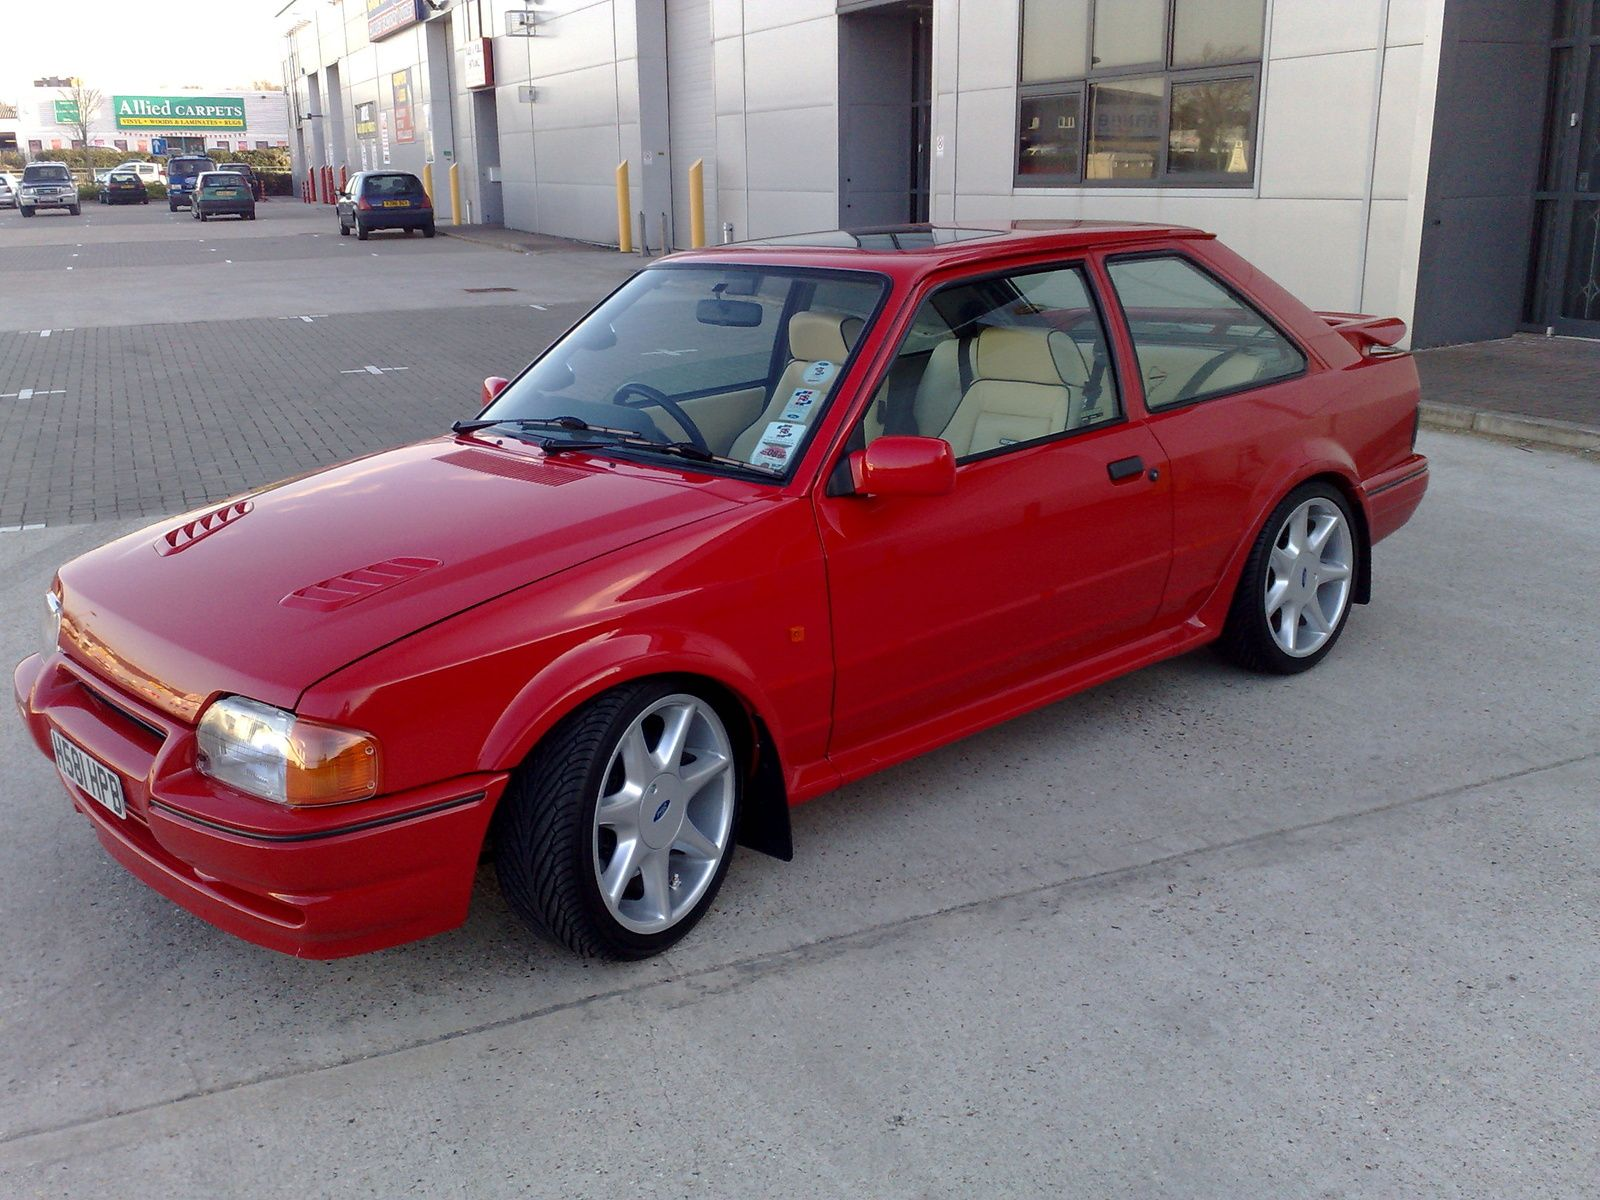 1990 Ford Escort Mk4 RS Turbo | Classic Cars | Ford ...